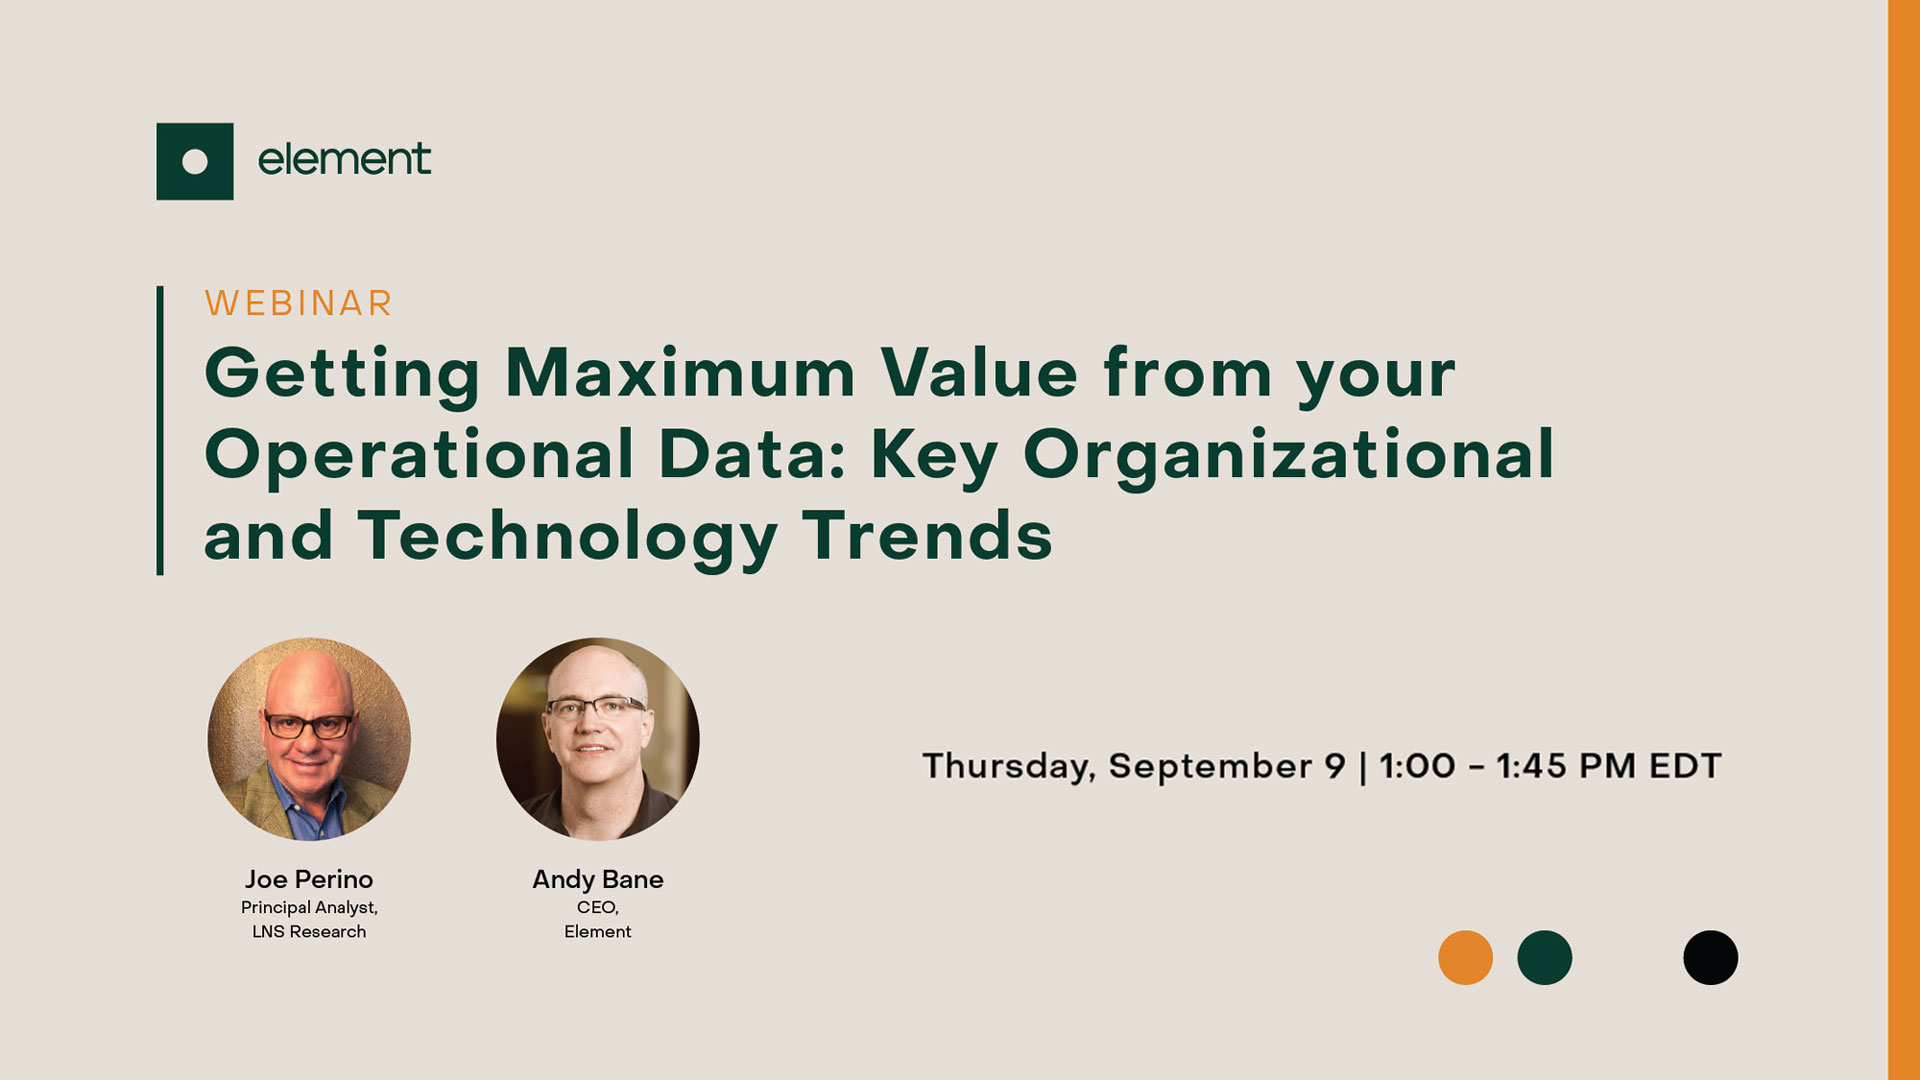 Getting Maximum Value From Your Operational Data